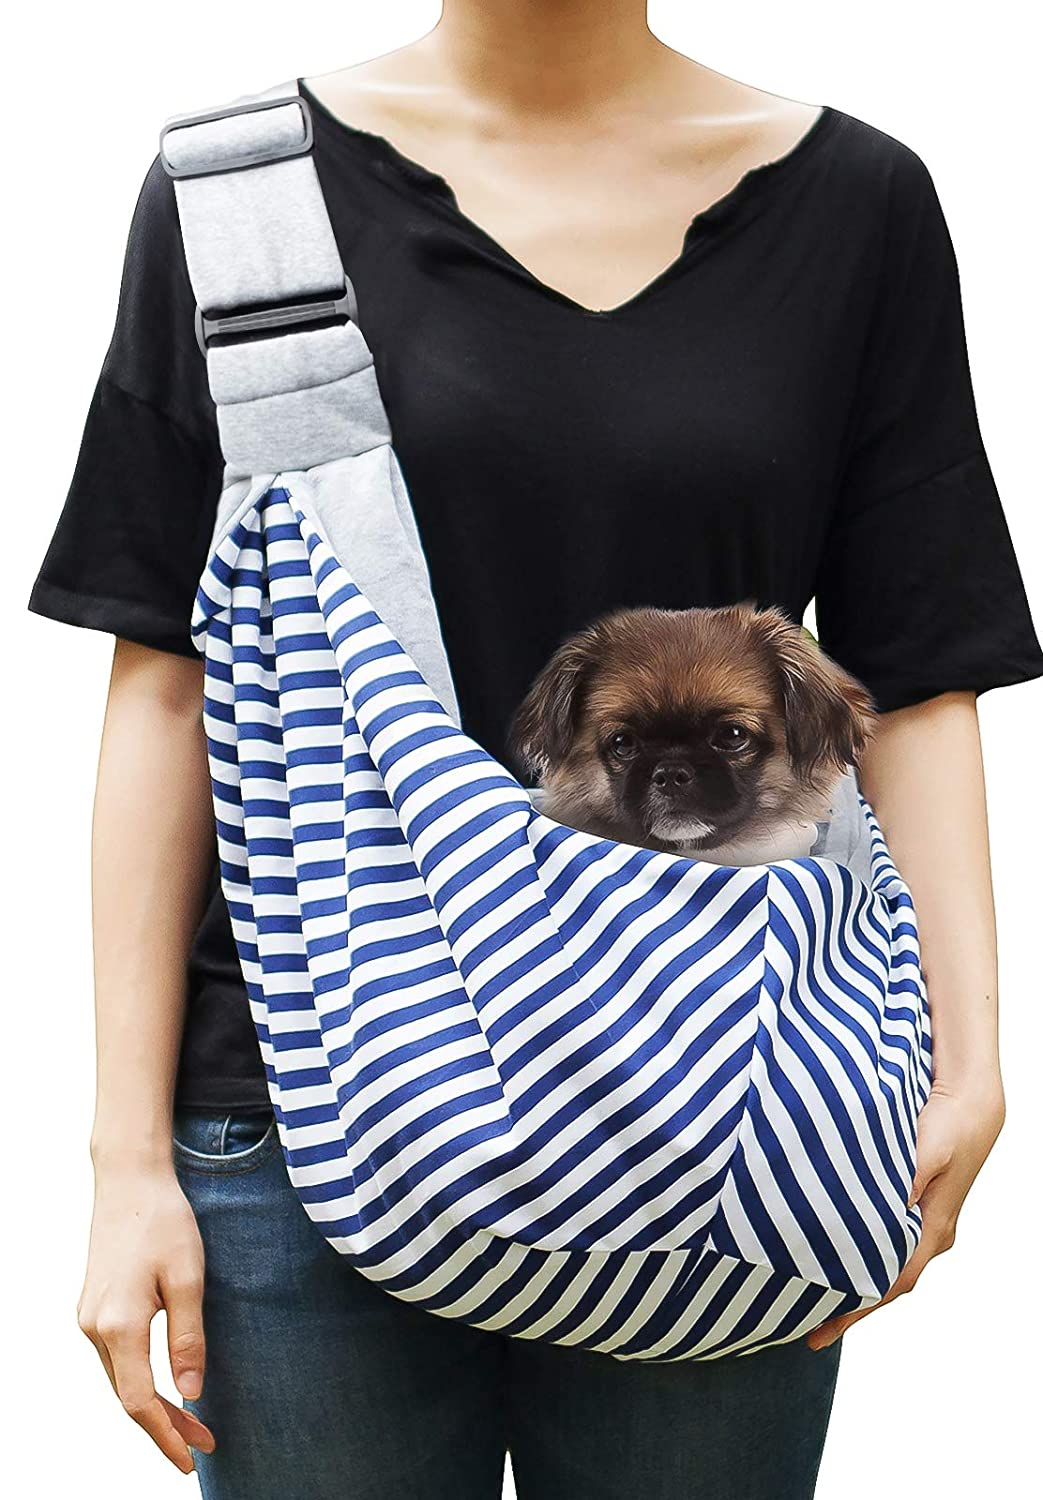 f7b3278661a Amazon.com   Timetuu Pet Sling Carrier for Small Dogs or Cats  Reversible  Hands-Free Puppy Tote Bag with Adjustable Strap